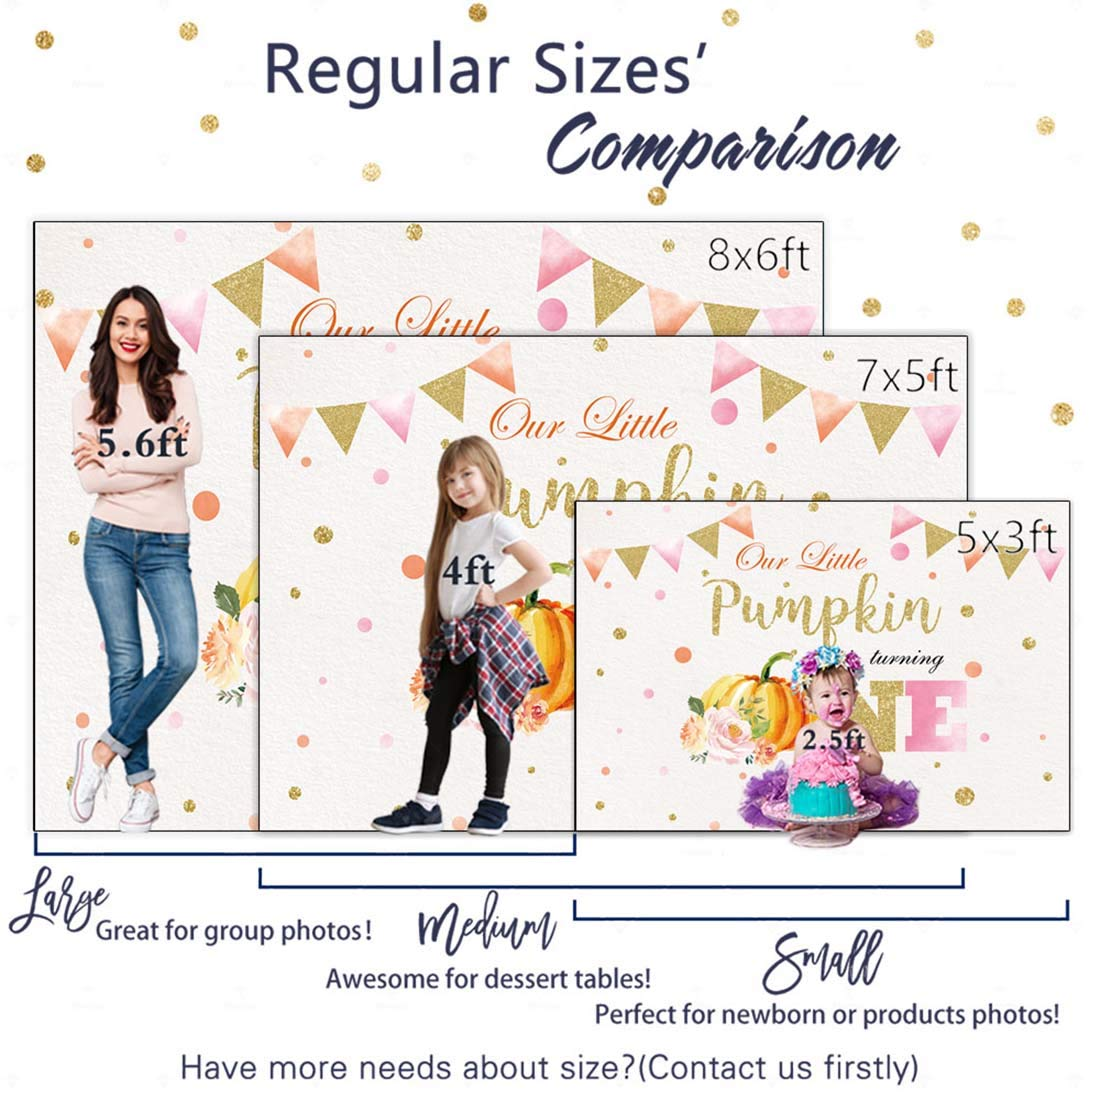 Allenjoy 7x5ft Colorful Cartoon Backdrop for Sweet 16 Happy 18 Dream Crazy Big Theme Bokeh Photography Background Birthday Party Banner Unicorn Puppy Girl Glitter Rainbow Baby Shower Photo Booth Decor